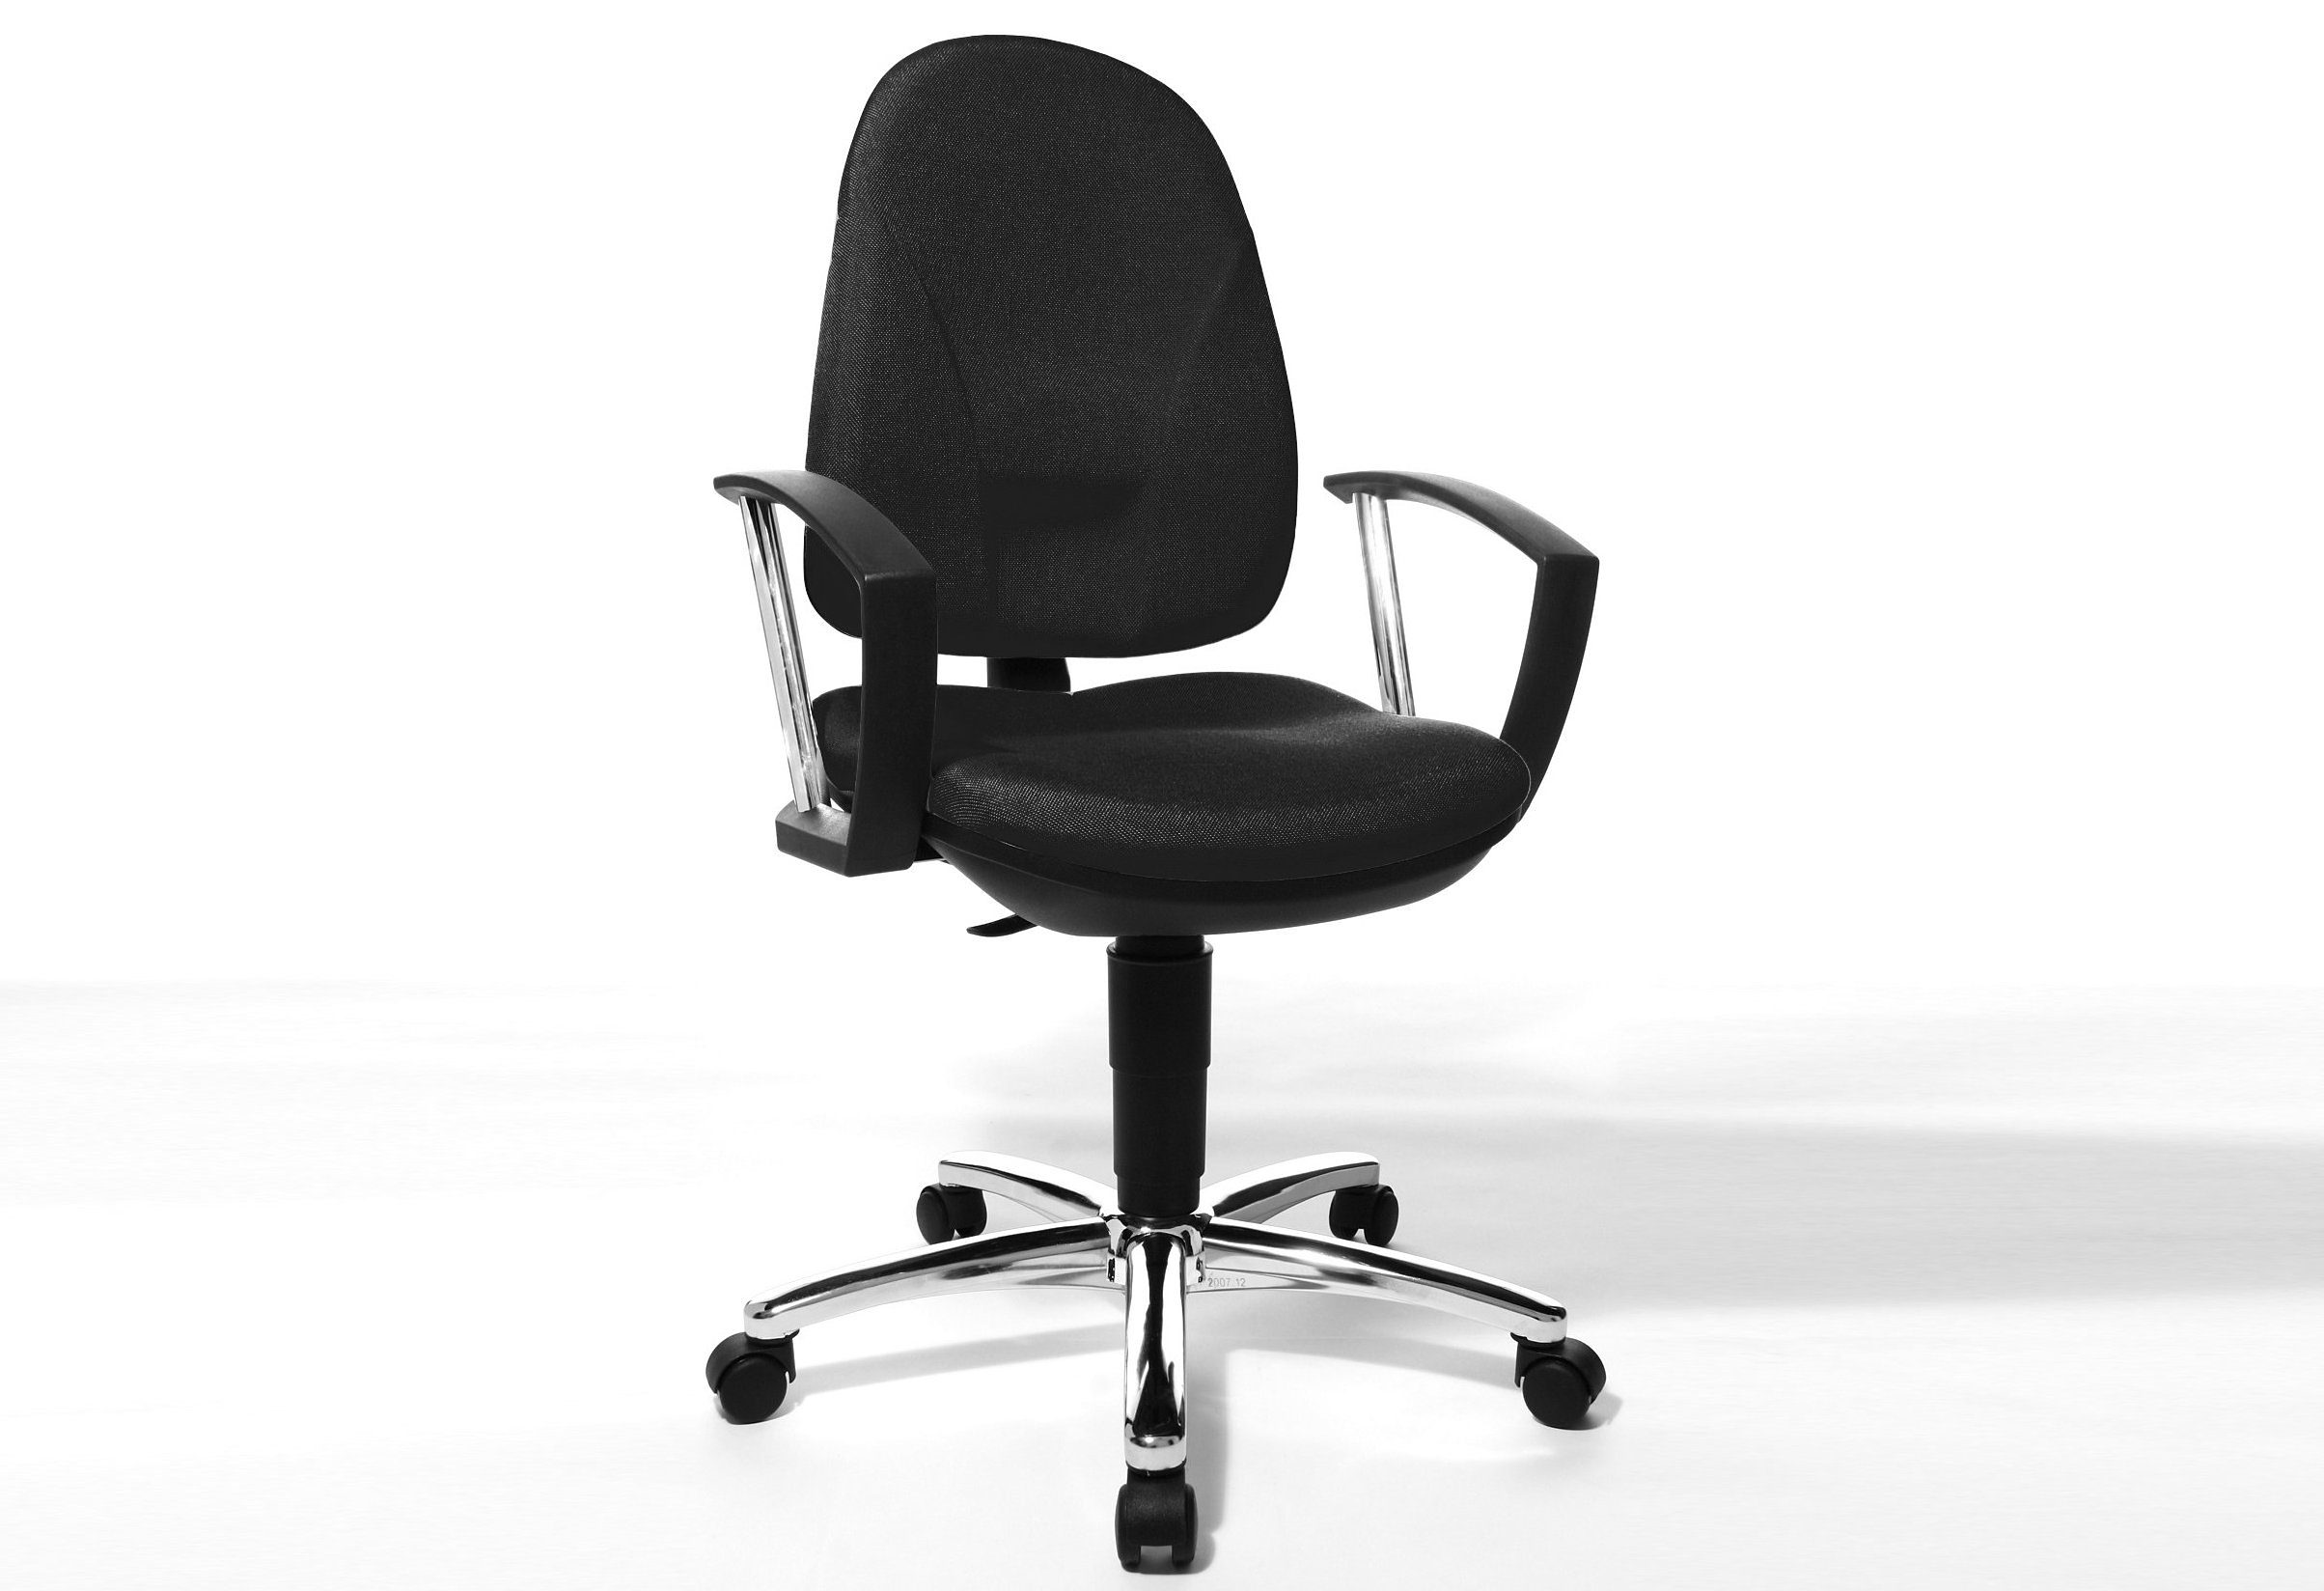 Topstar Bürostuhl »Home Chair 70 - Deluxe«, in 2 Farben